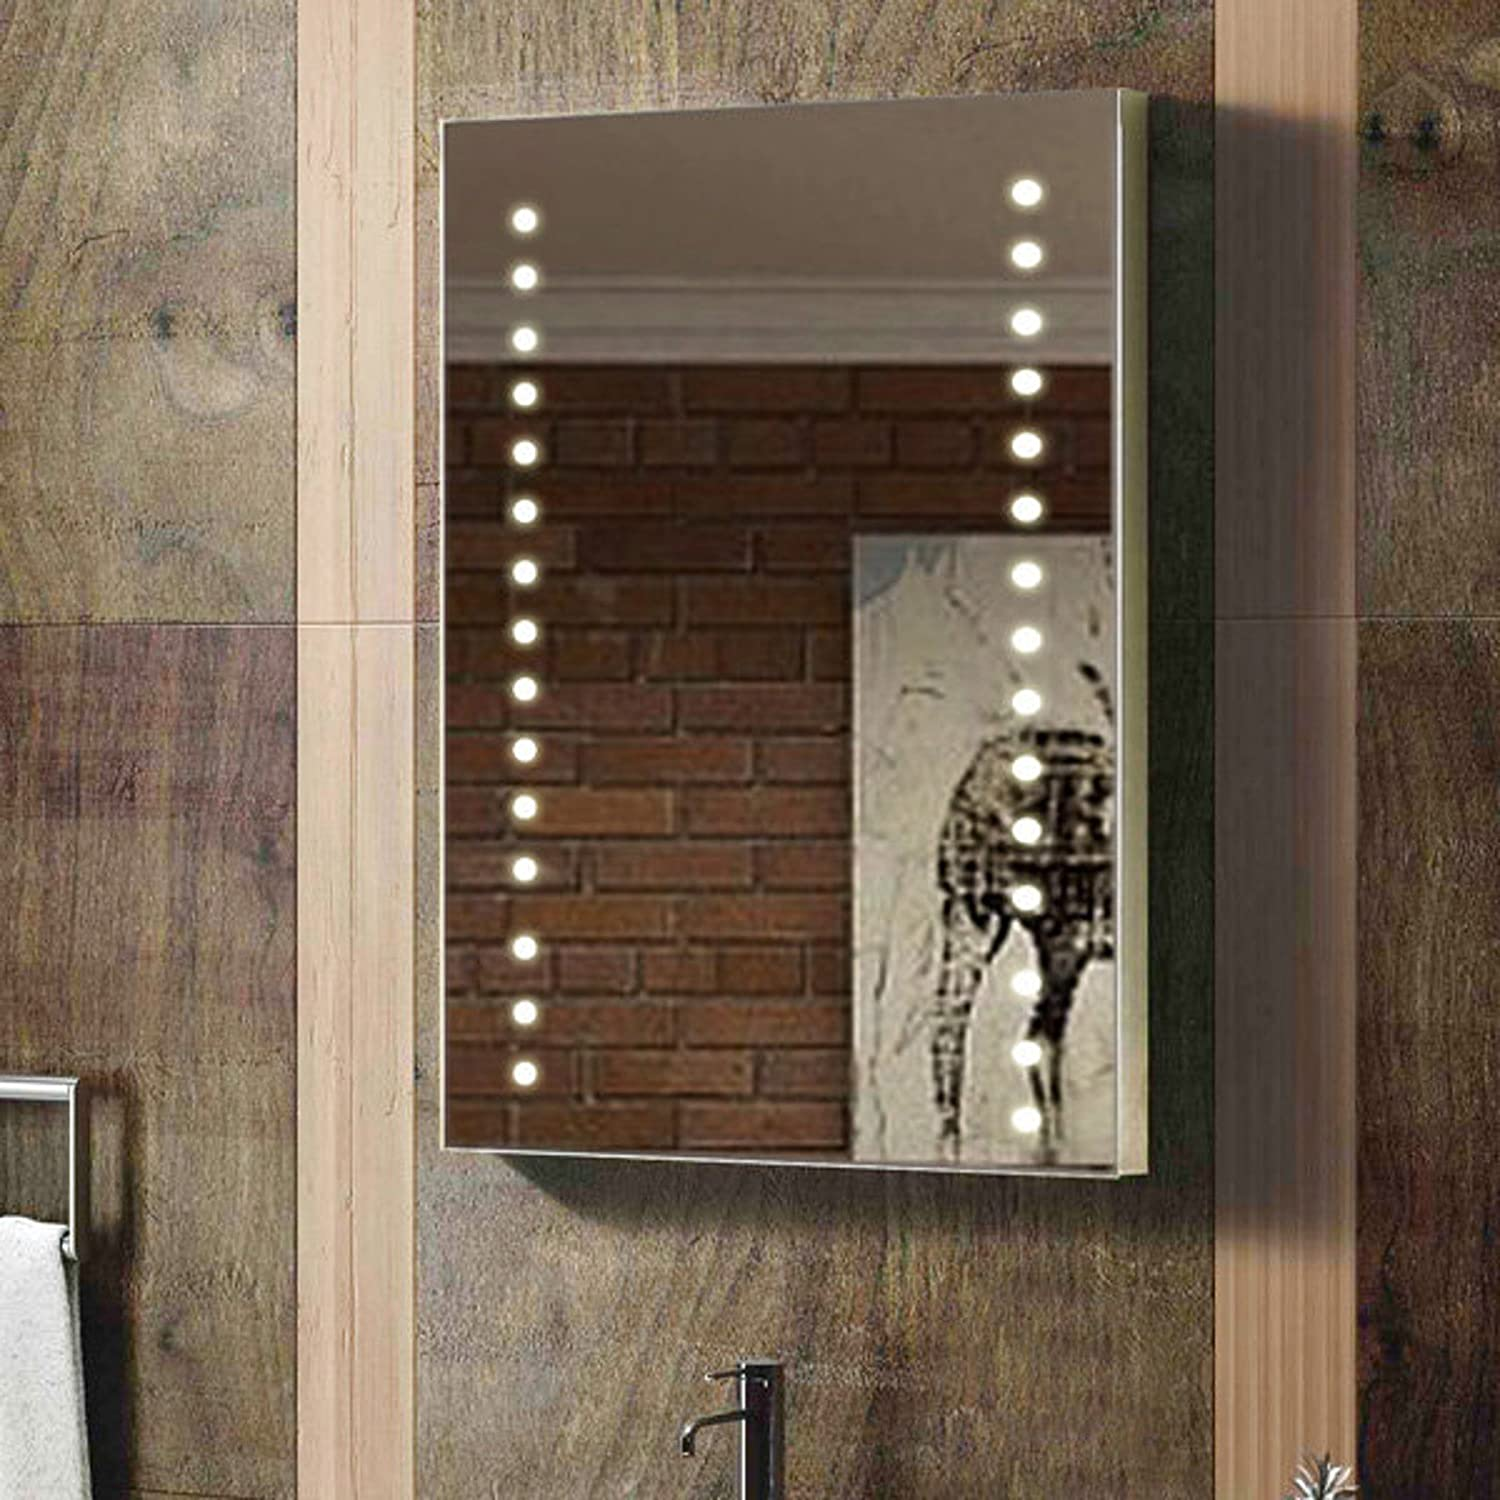 enki 400 x 600 mm led allument miroir en verre mur chambre salle de bain maison ebay. Black Bedroom Furniture Sets. Home Design Ideas